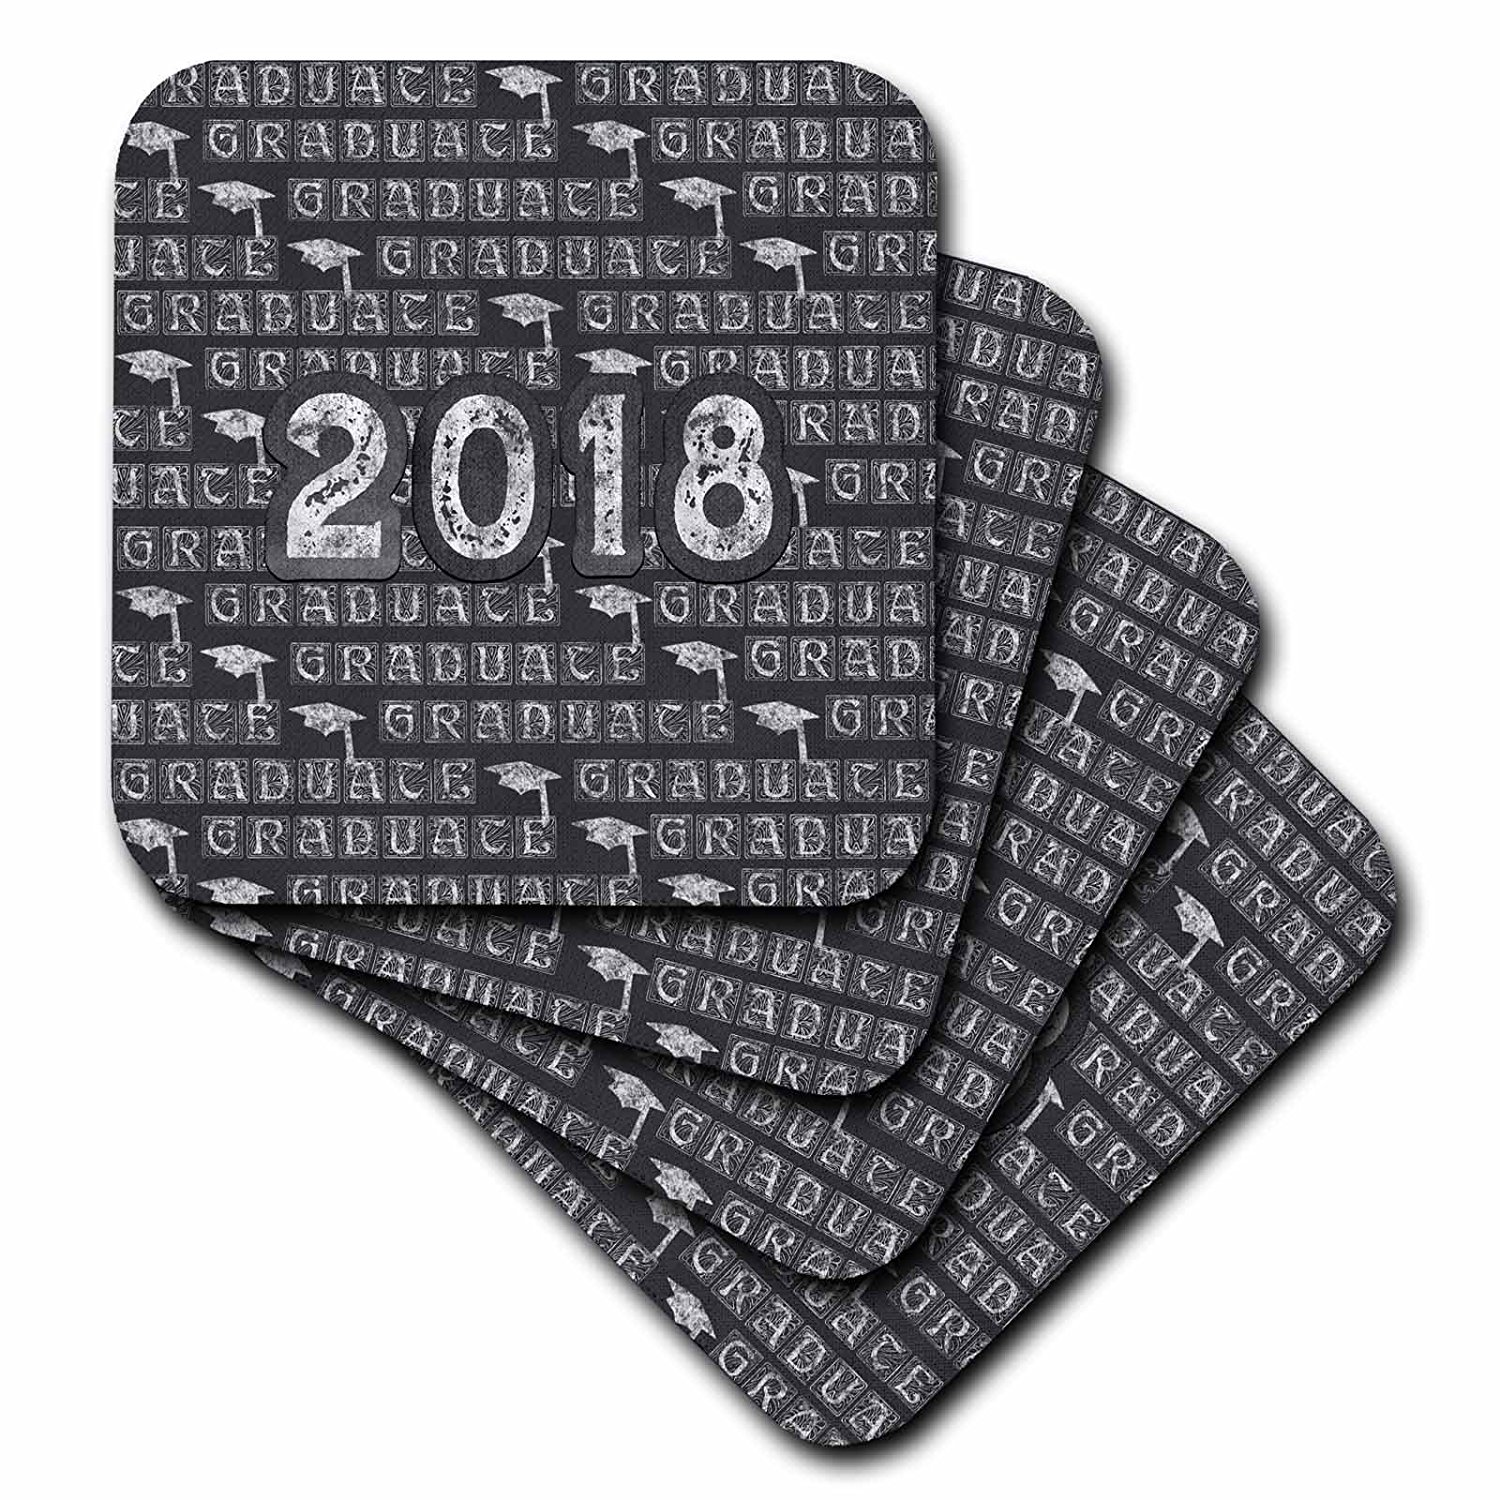 3dRose Beverly Turner Graduation Design - 2018 and Graduation Caps Caulk board Look, White and Gray - set of 4 Ceramic Tile Coasters (cst_276154_3)